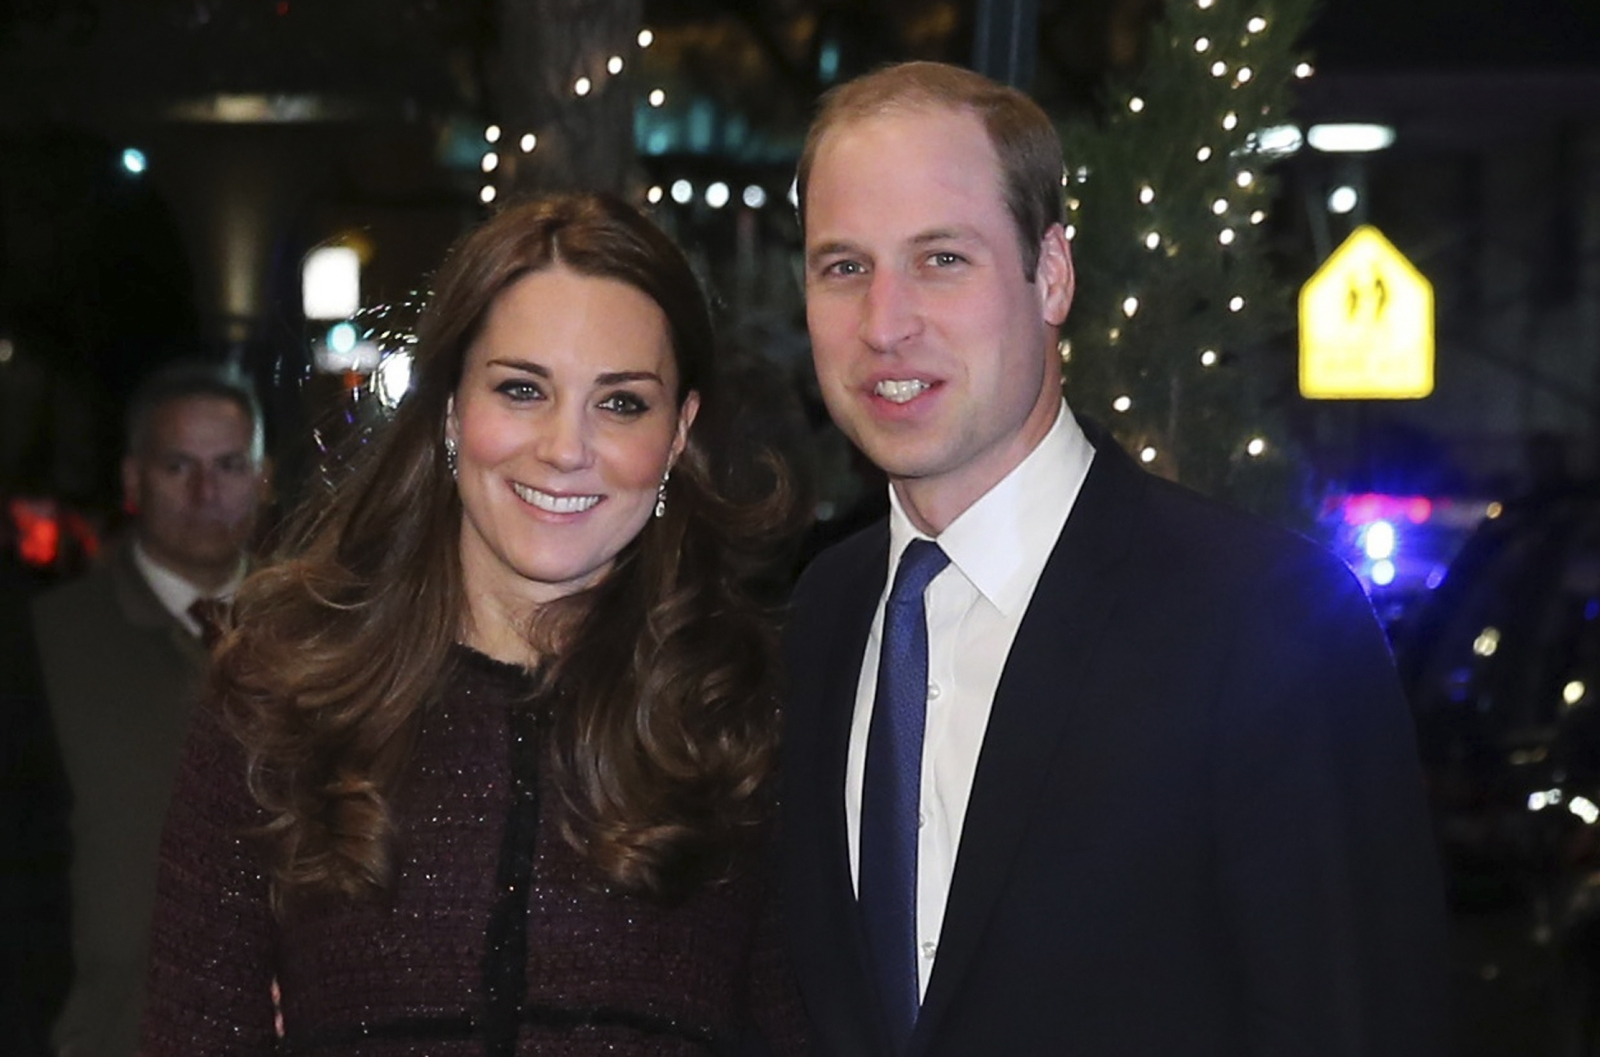 Cheering New Yorkers greet William and Kate in first official visit